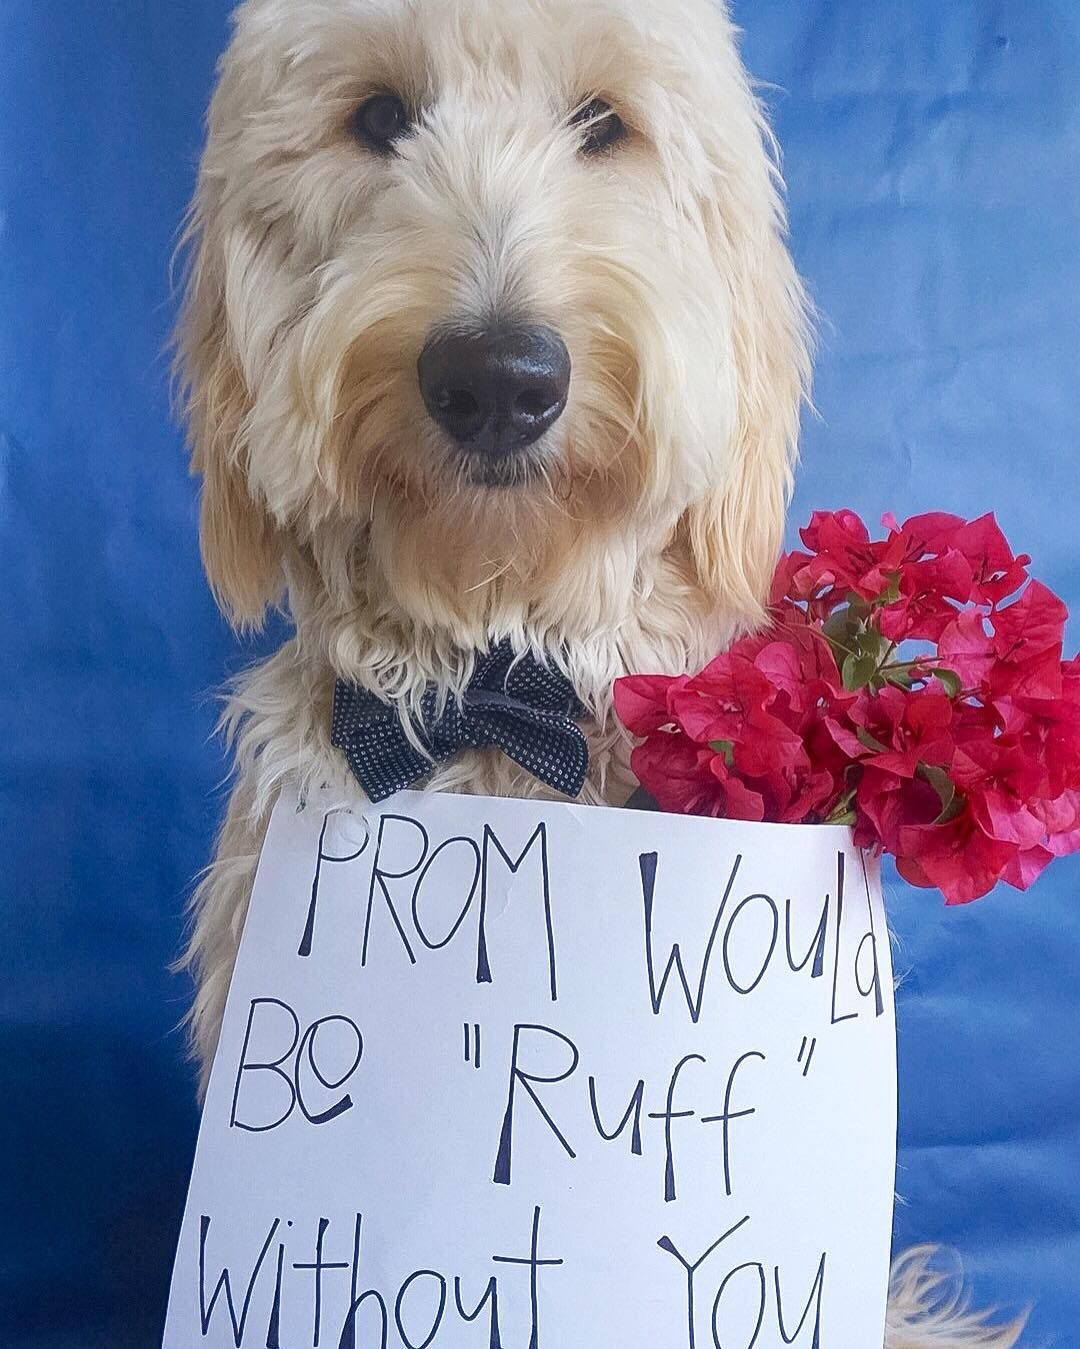 Proposal Ideas Using Pets: It's Prom Season And I'm Looking For Someone To Ask